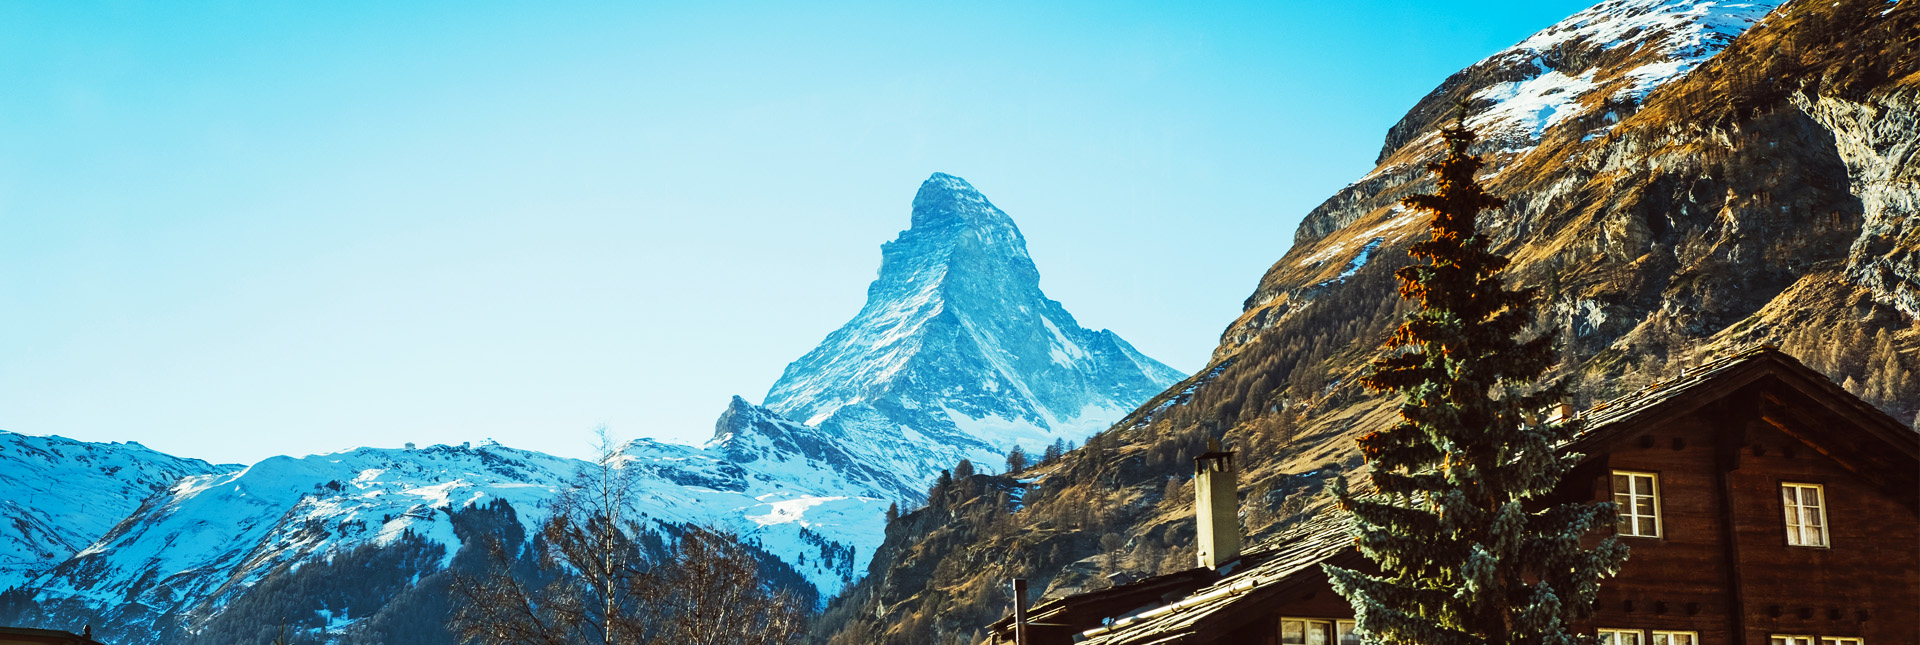 View of Matterhorn from a Village near Zermatt